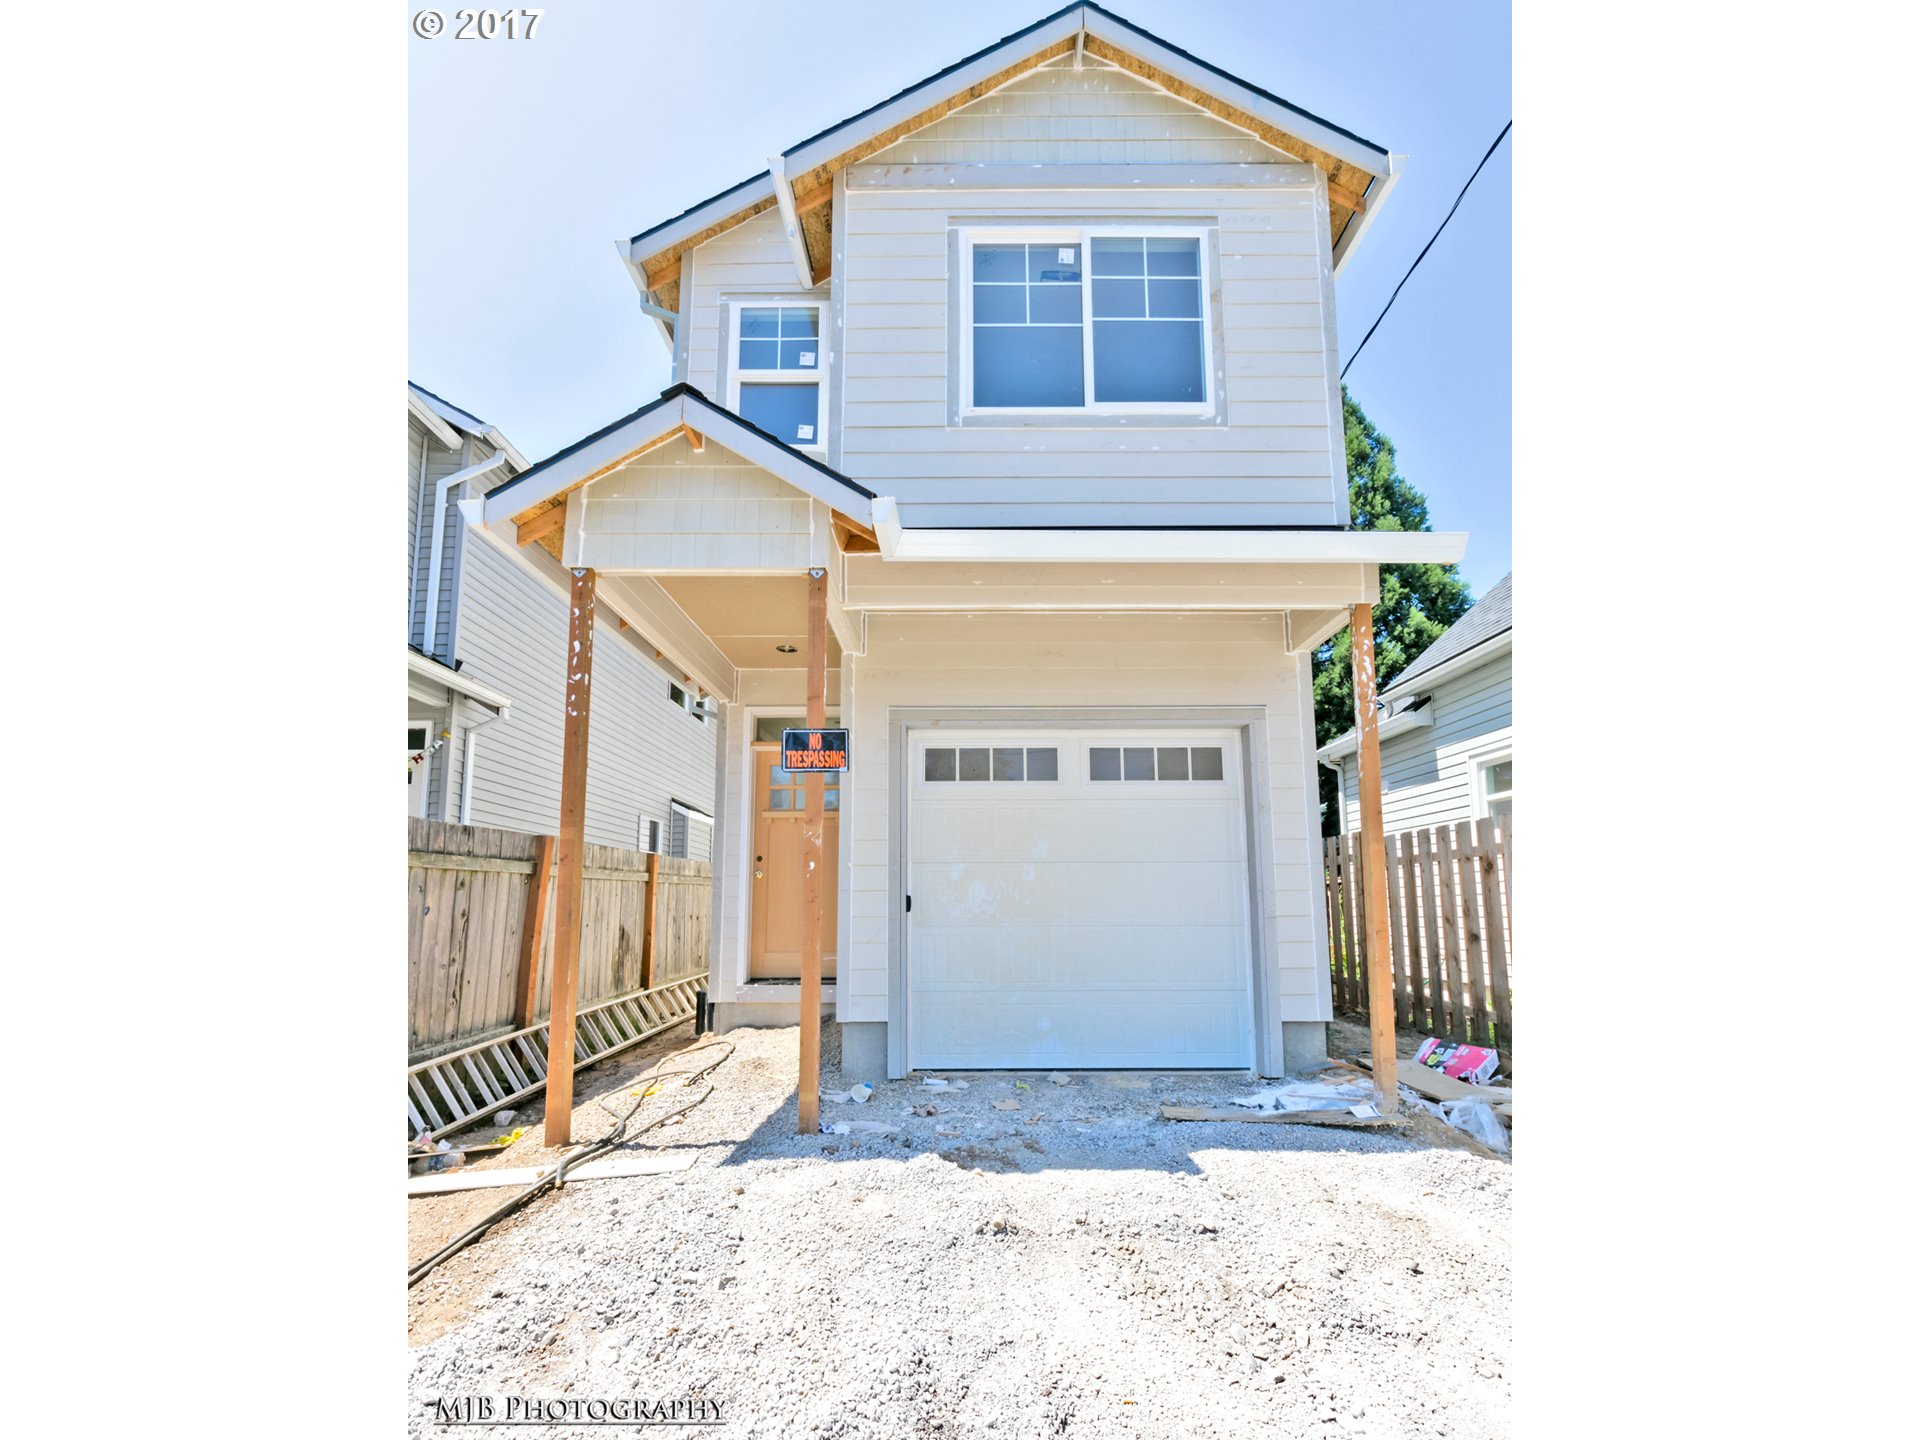 Beautiful new construction in pop Kenton near shopping, dining, transit & freeway access! Also near other neighbrhds:  Mississippi, Arbor Lodge & U of P! BikeScore 80! Quality finishes, built by a long time, local builder w/3 bdrm, 2 1/2 bth w/attached garage, wood flrs on main,  open kitch w/SS apps, forced air heating, hi-ceilings, & much more! Nearly complete and ready for occupancy for summer!